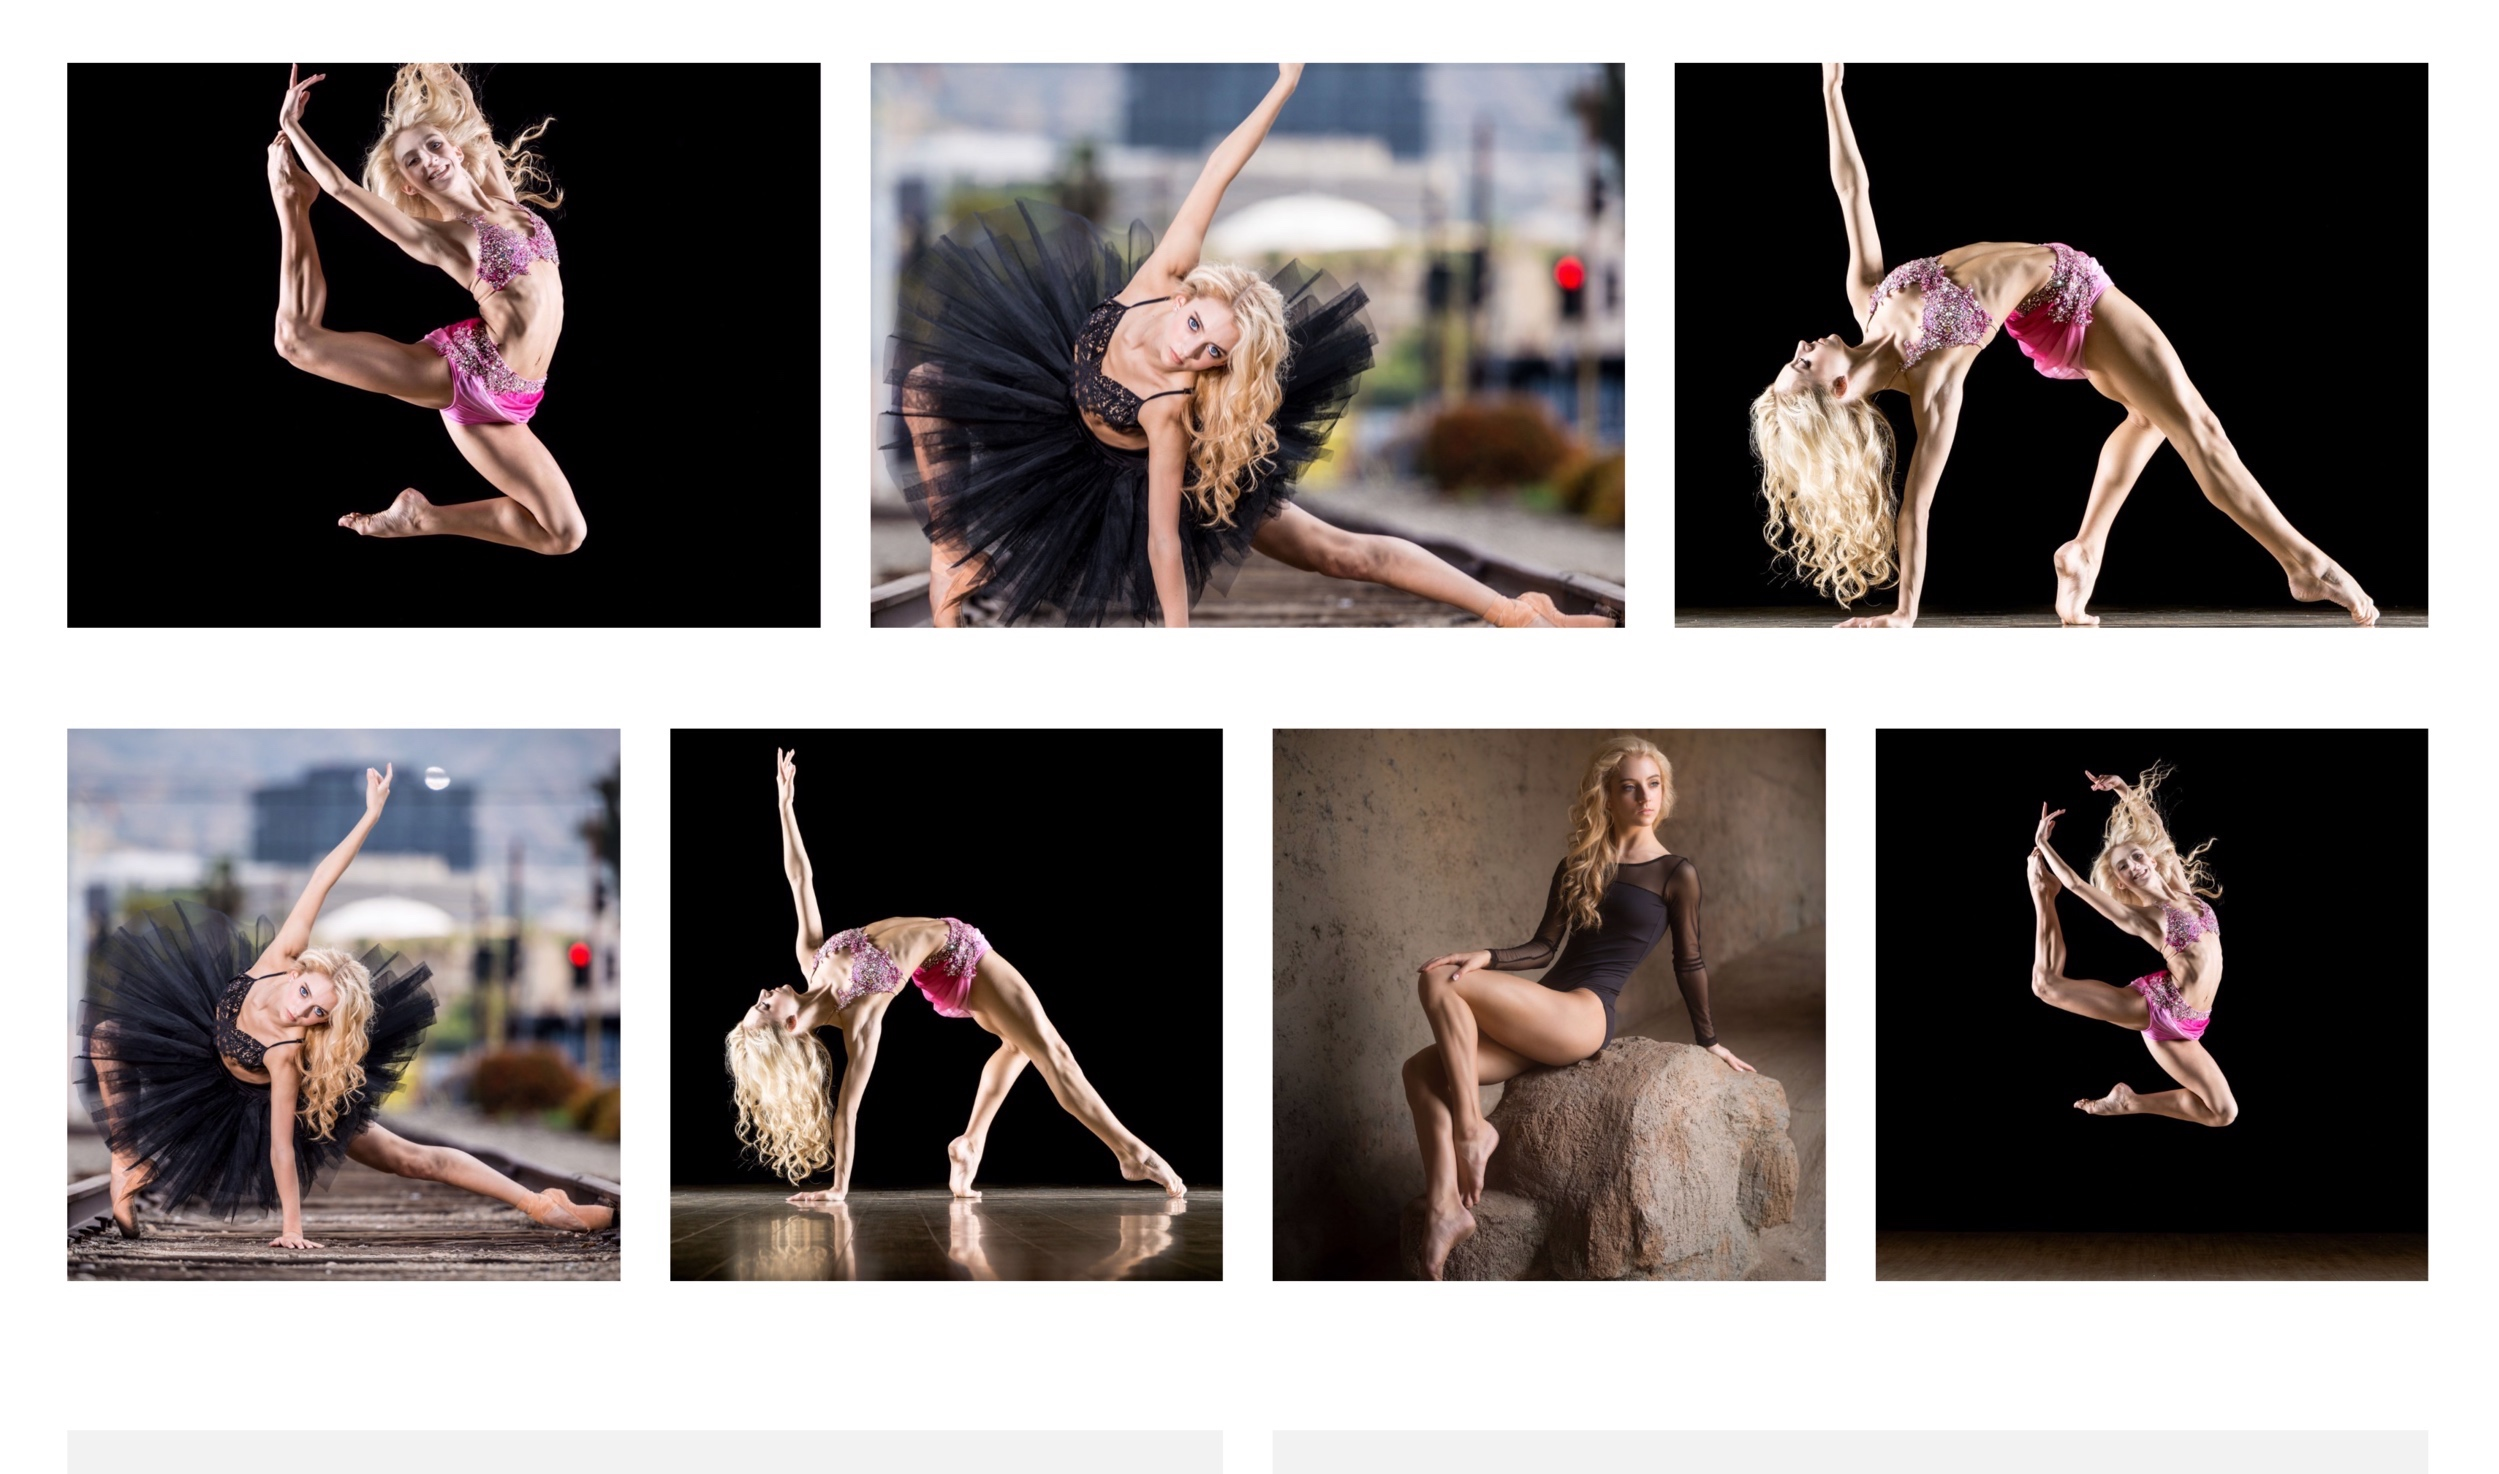 dancer gallery design 2 - view demo